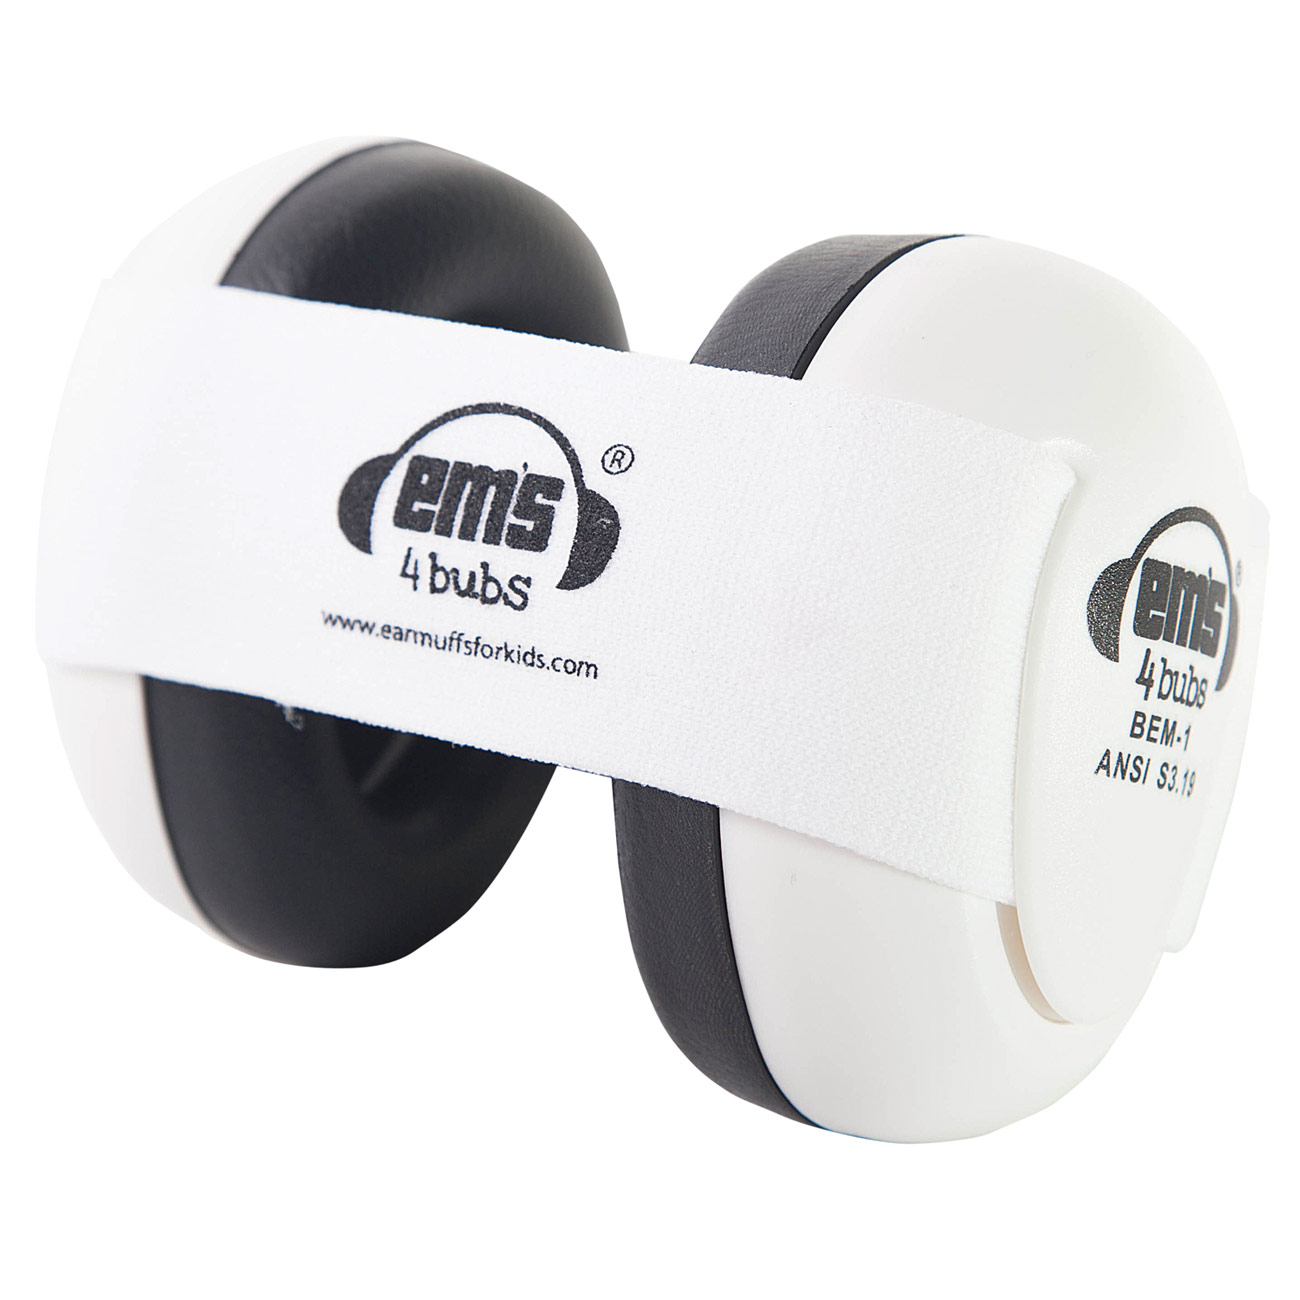 Hearing Care Aid Protectors And Maintenance Dry Reusable Earplug 3m Ultrafit Corded No Case 340 4004 Perbox Ems 4 Bubs Baby Protection White Earmuffs